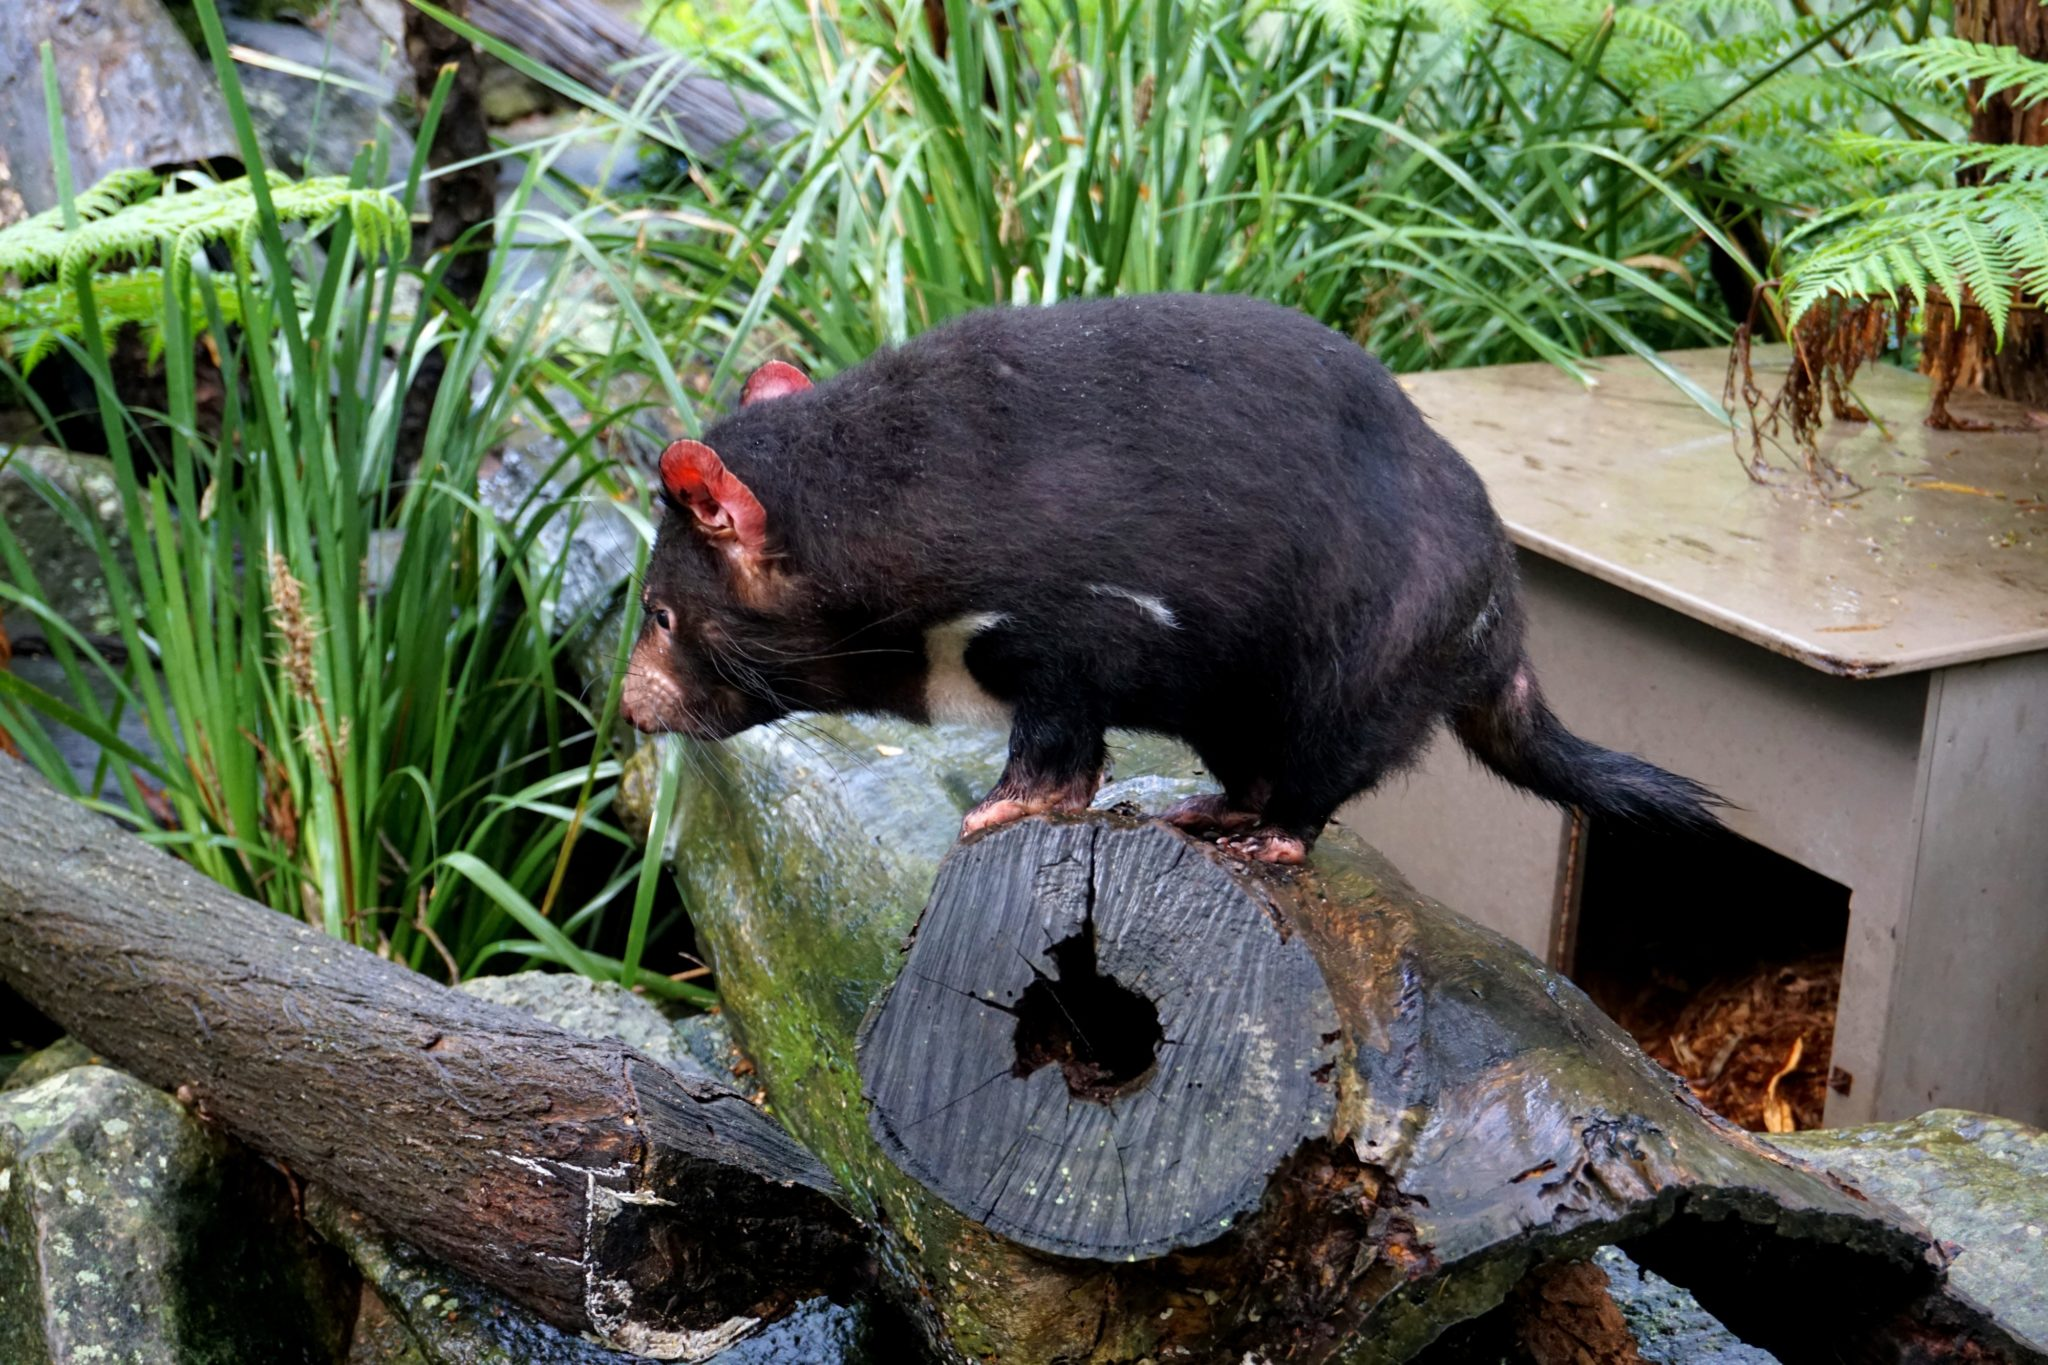 A Tasmanian Devil awkwardly standing on a tree stump.